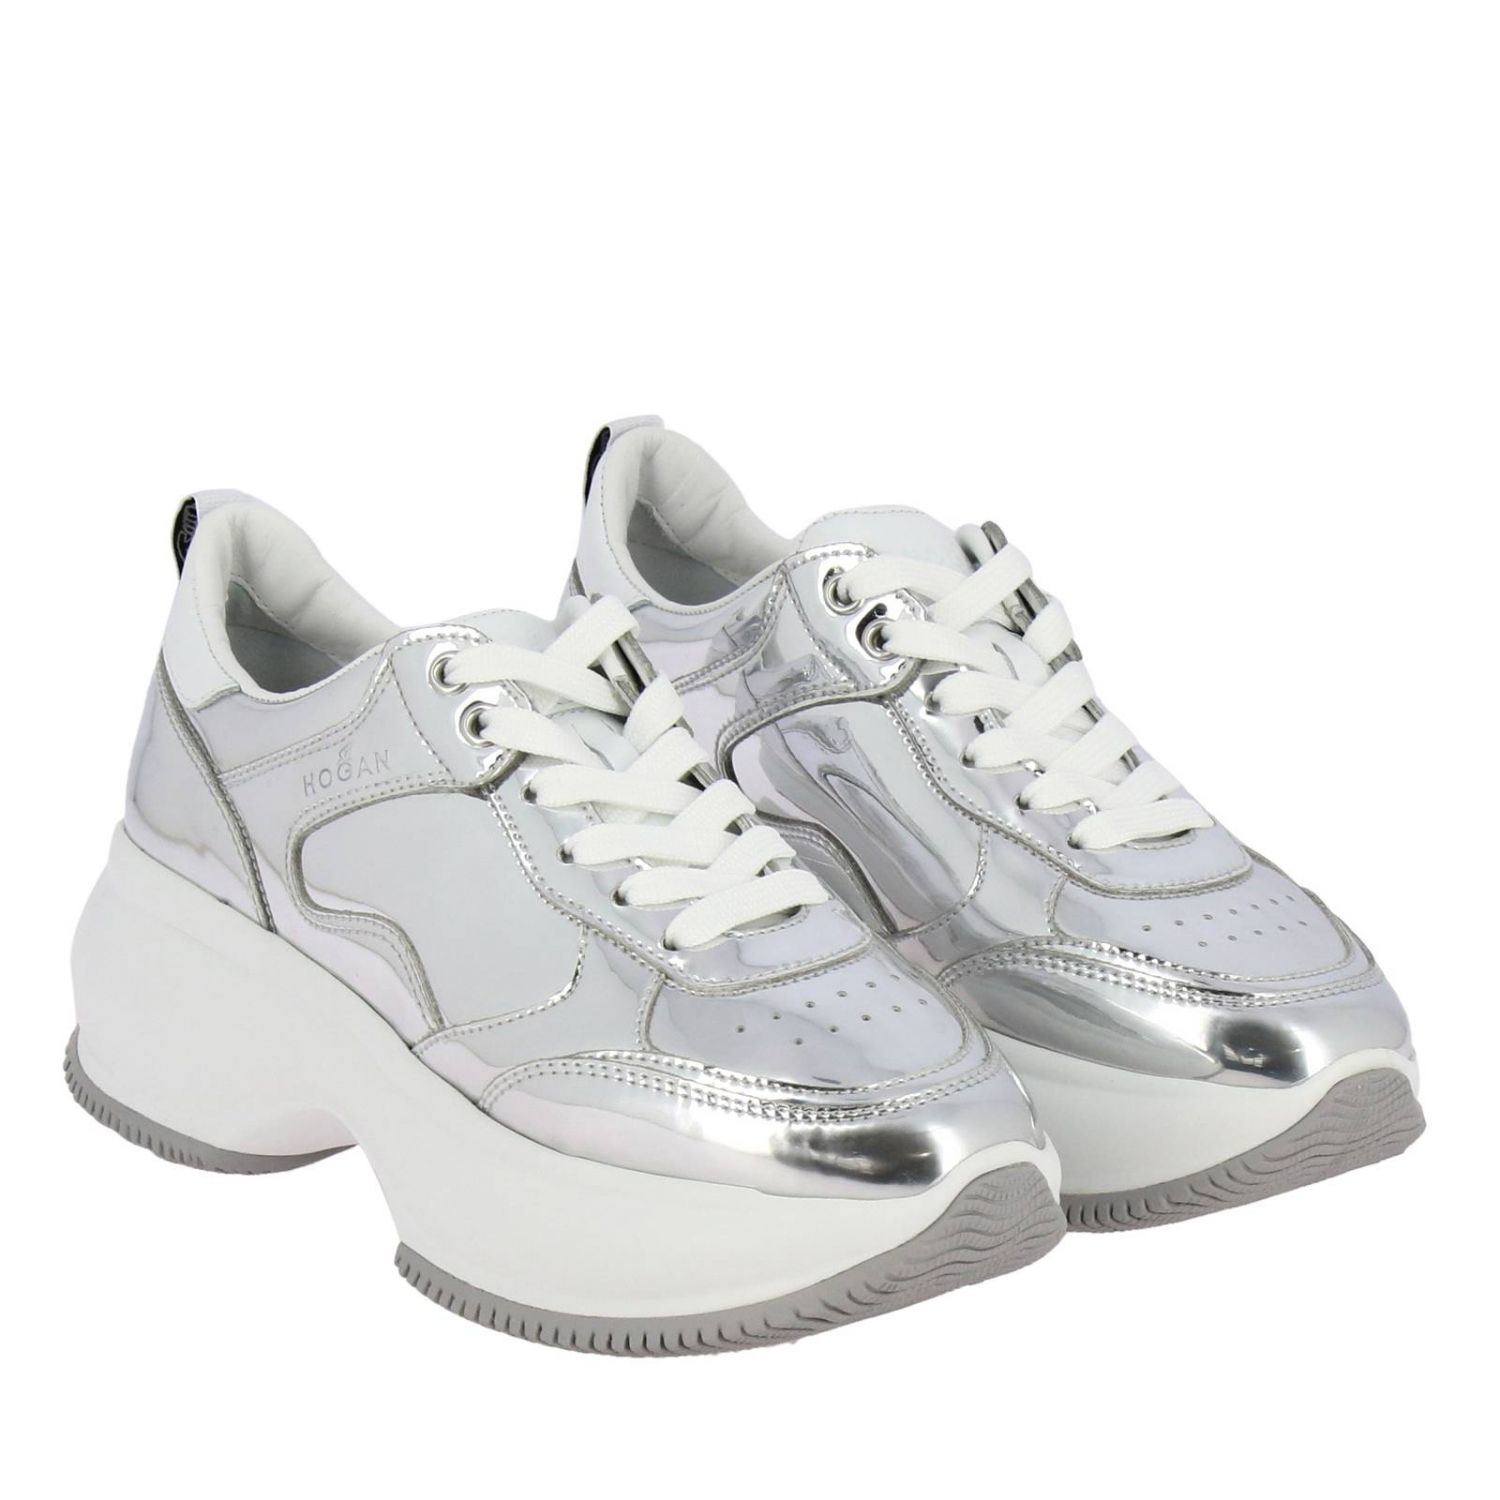 Sneakers Hogan: Active one Maxi Hogan mirrored leather sneakers and smooth leather silver 2